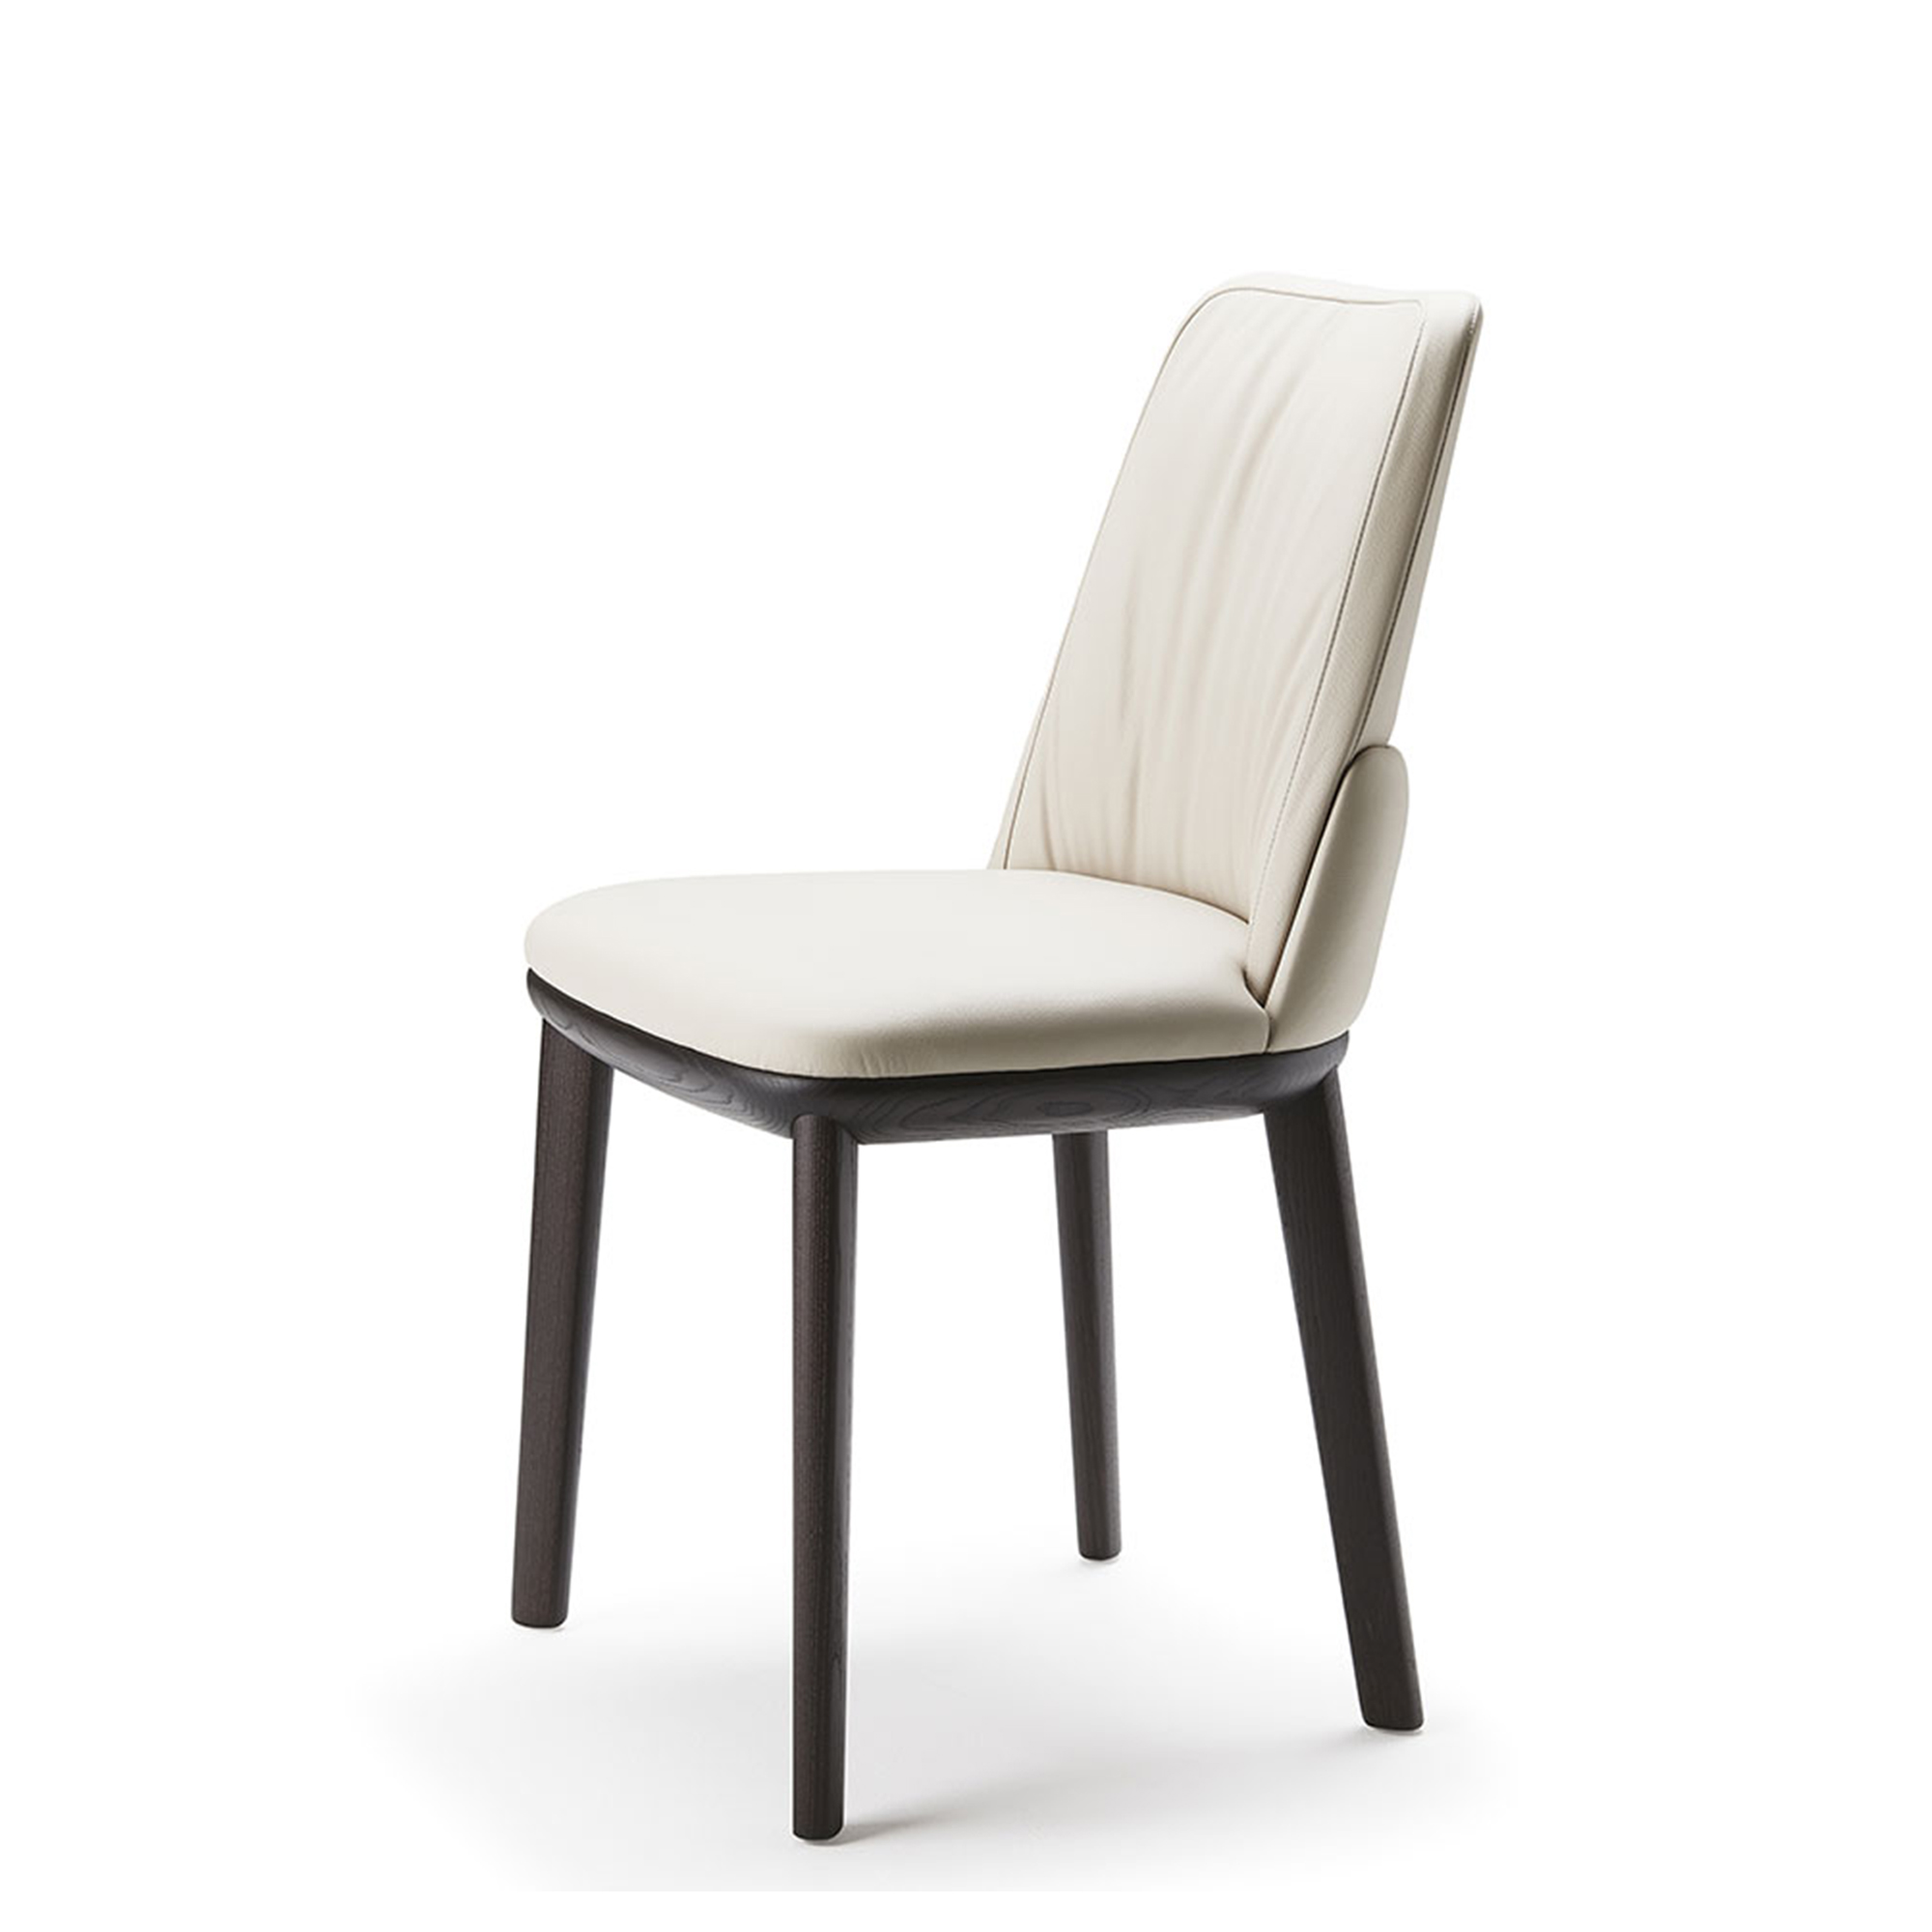 Cattelan Italia Chairs Cattelan Italia Belinda Dining Chair In Synthetic Leather Dining Chairs Fishpools